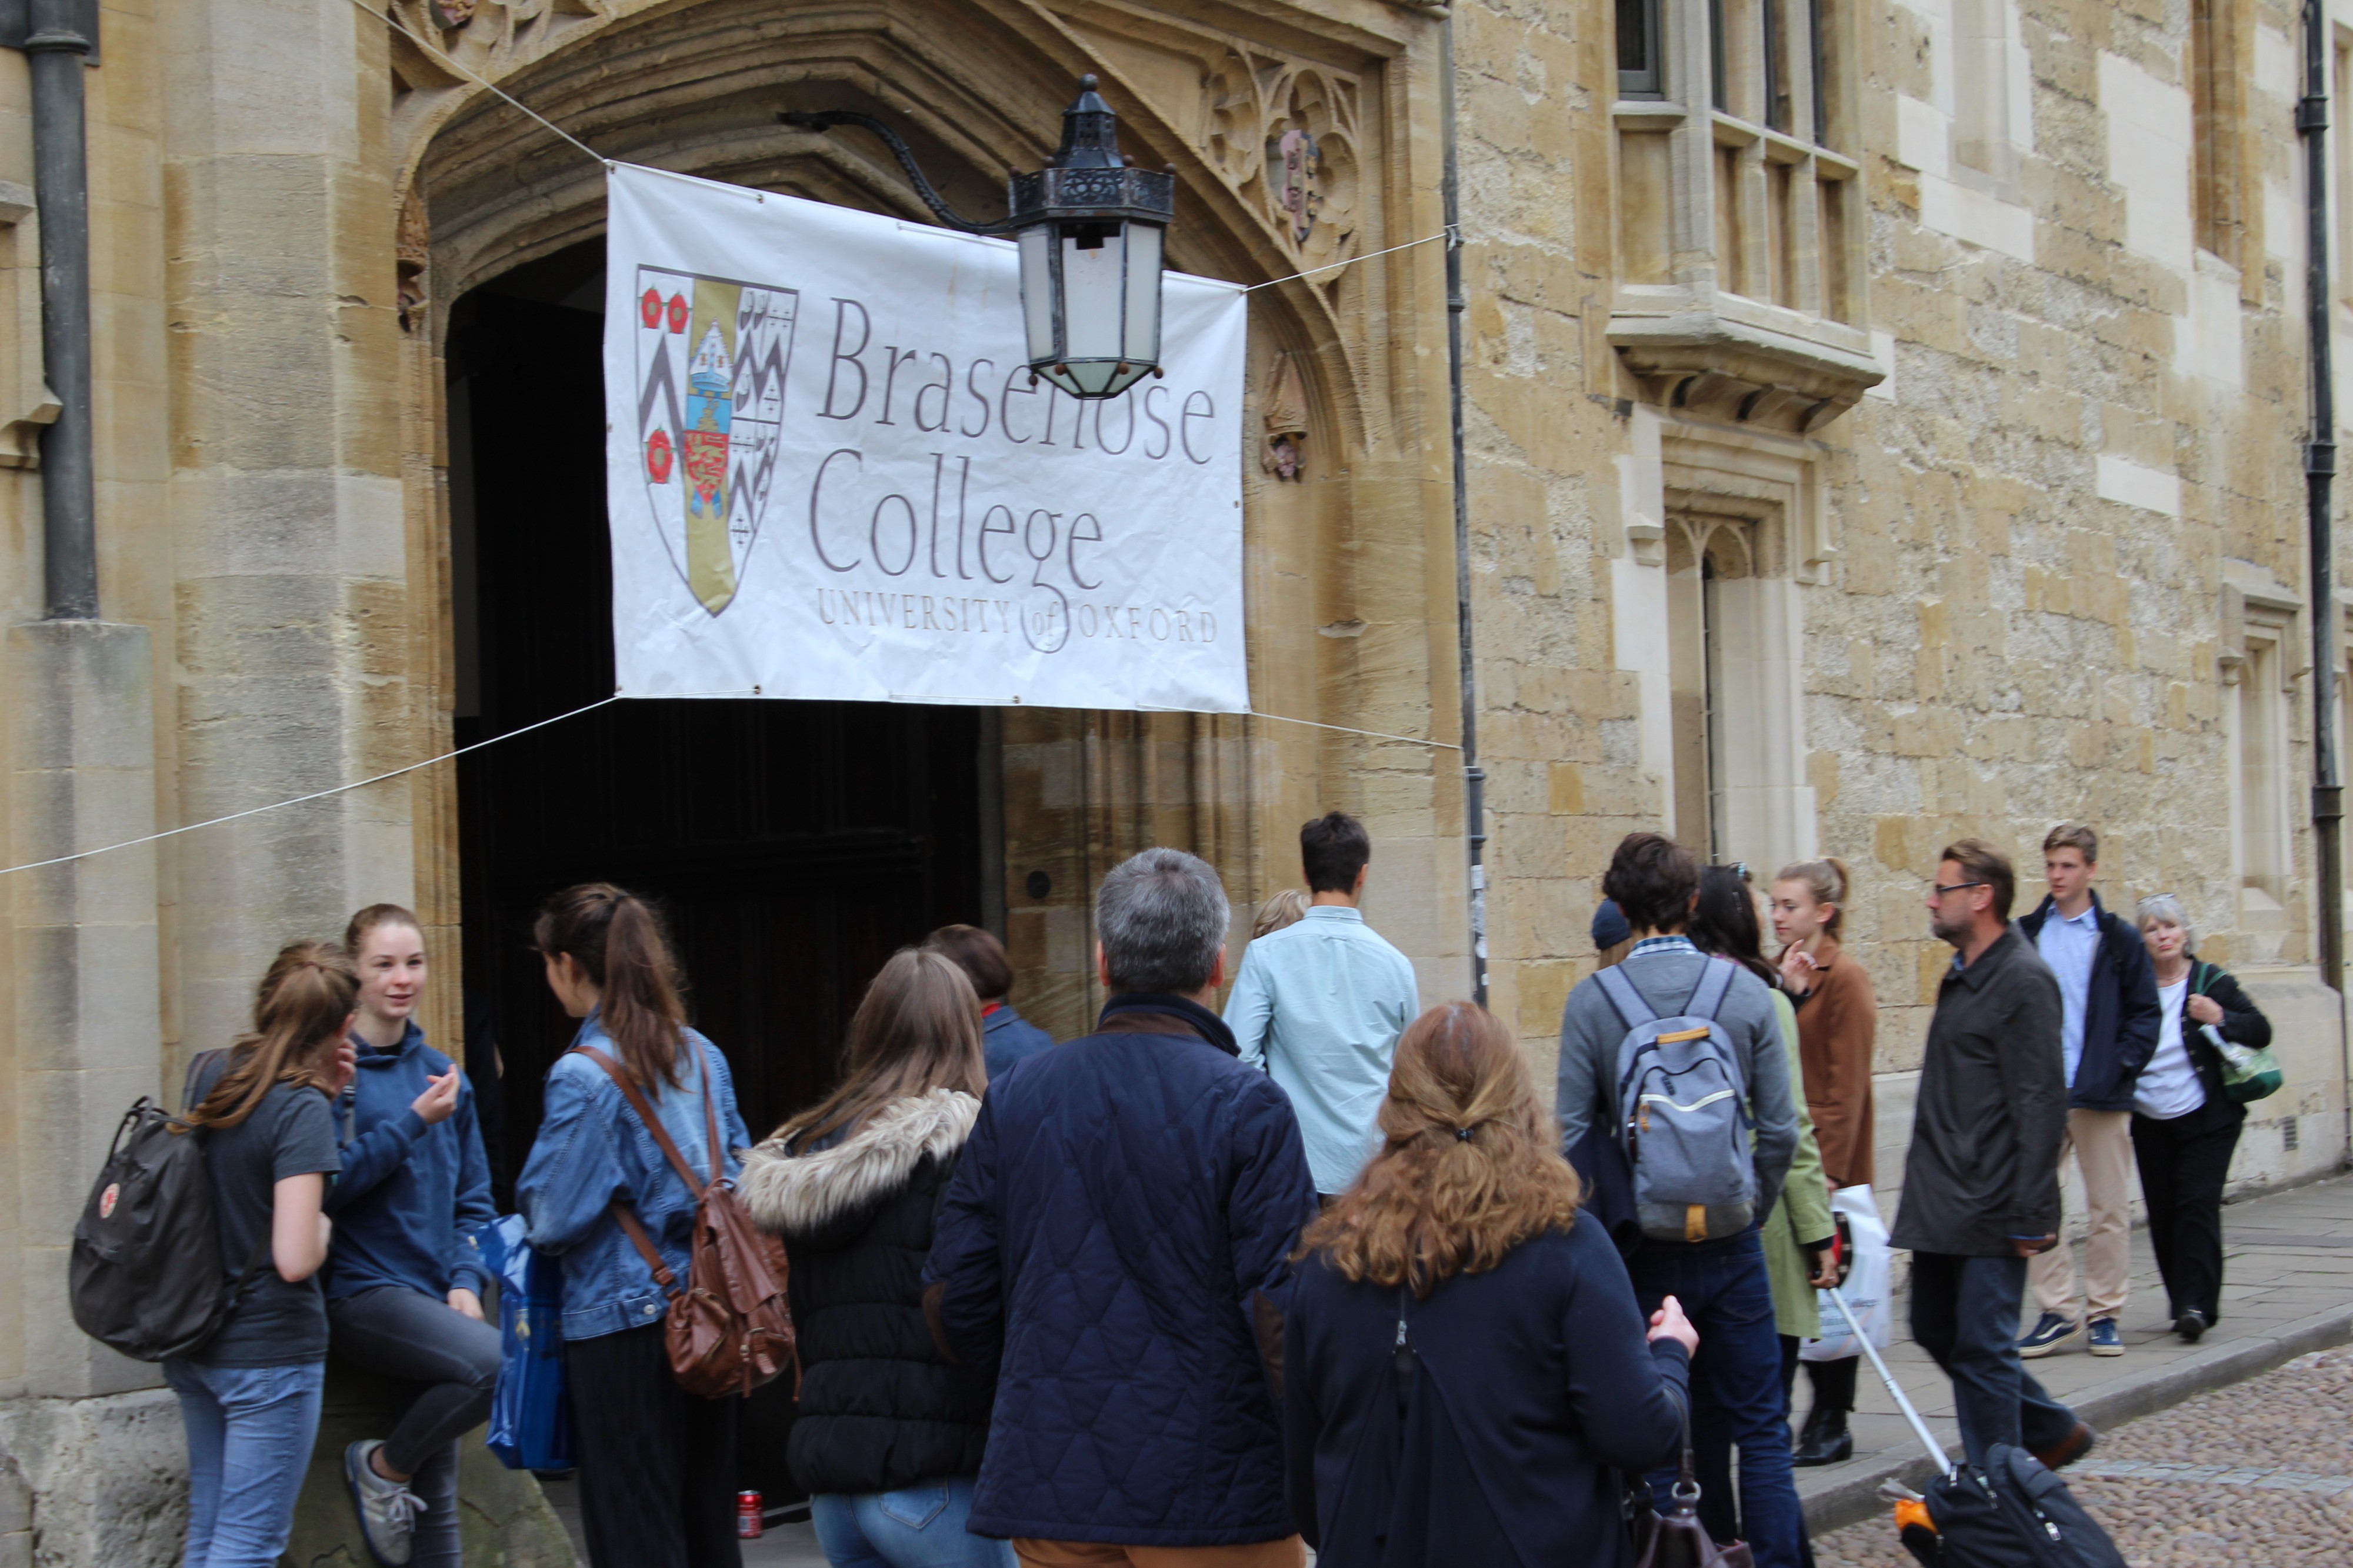 The outside of Brasenose College